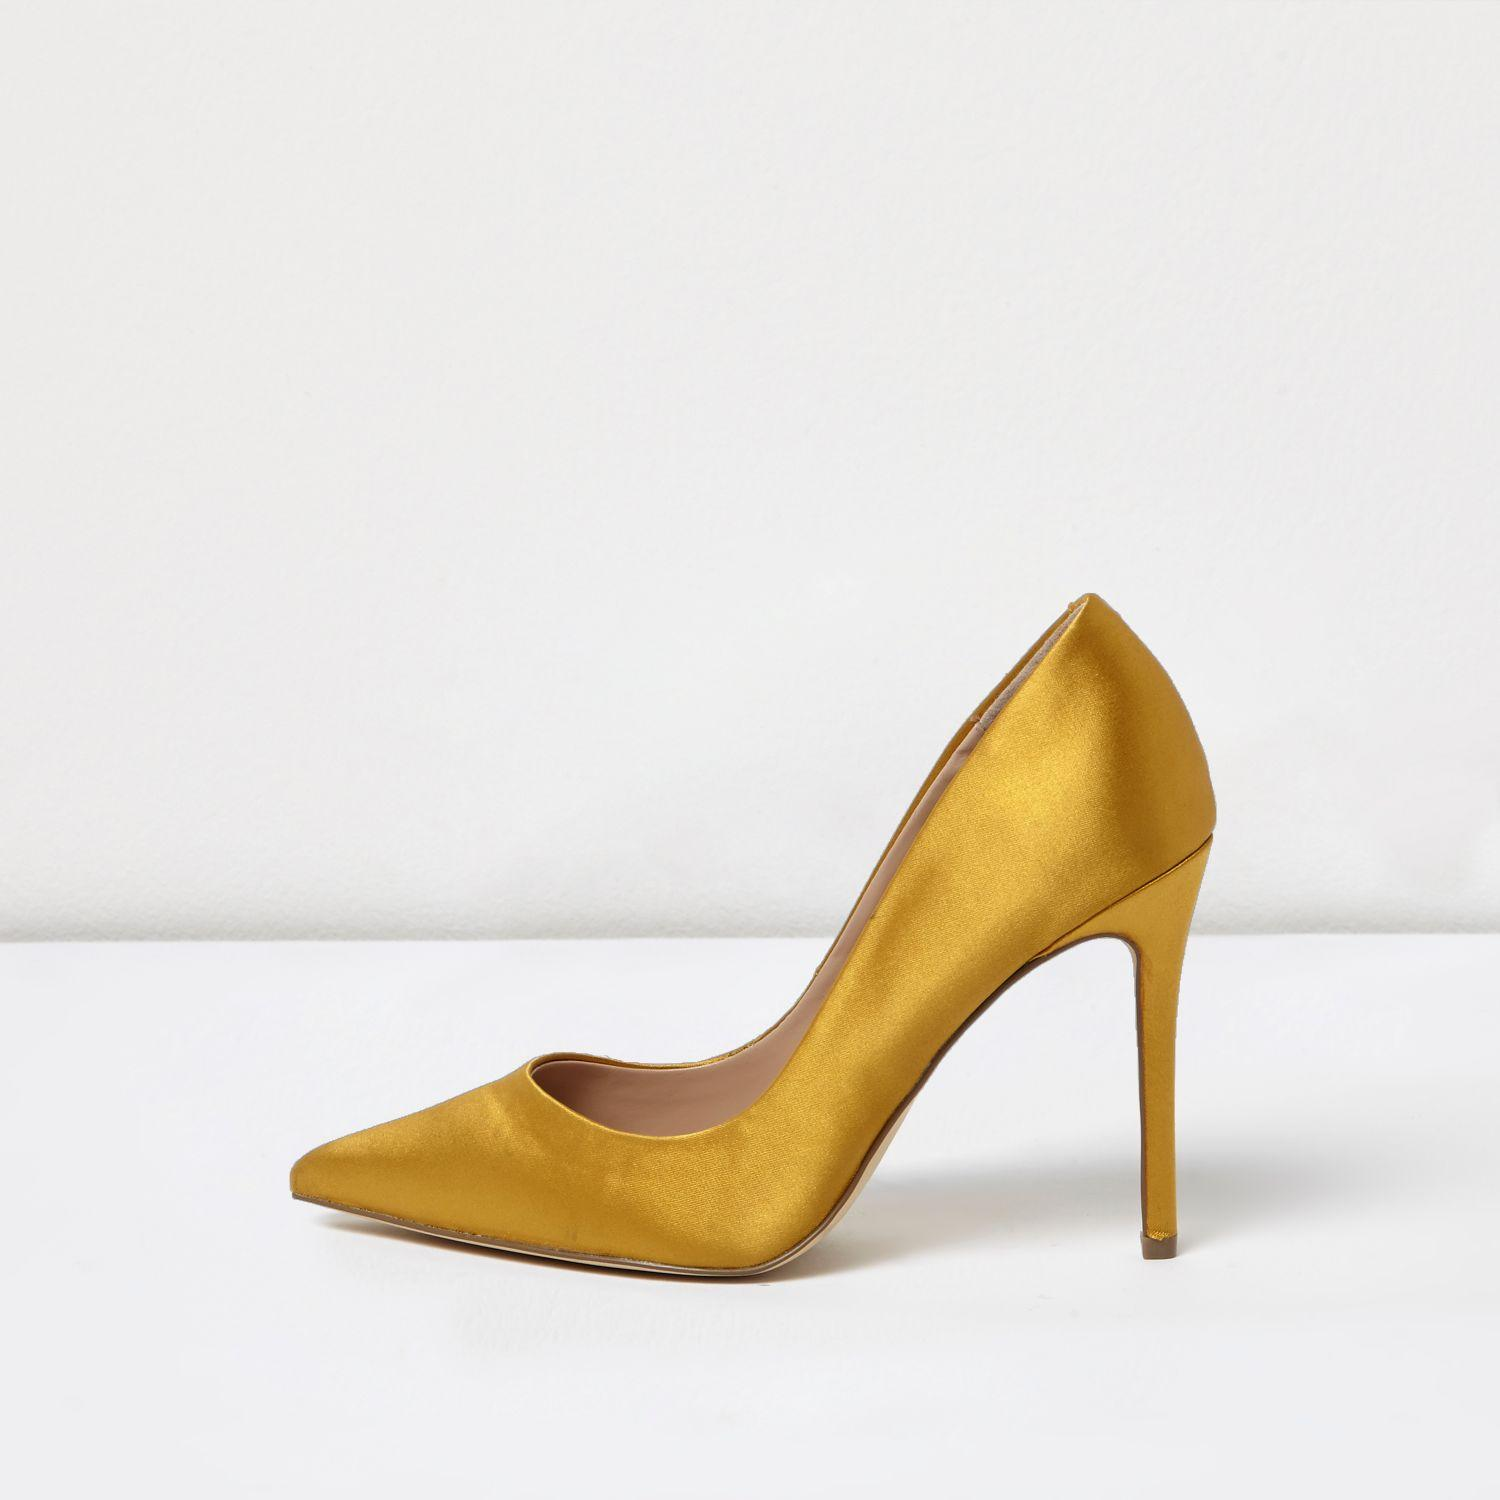 River island Gold Satin Court Shoes in Yellow   Lyst